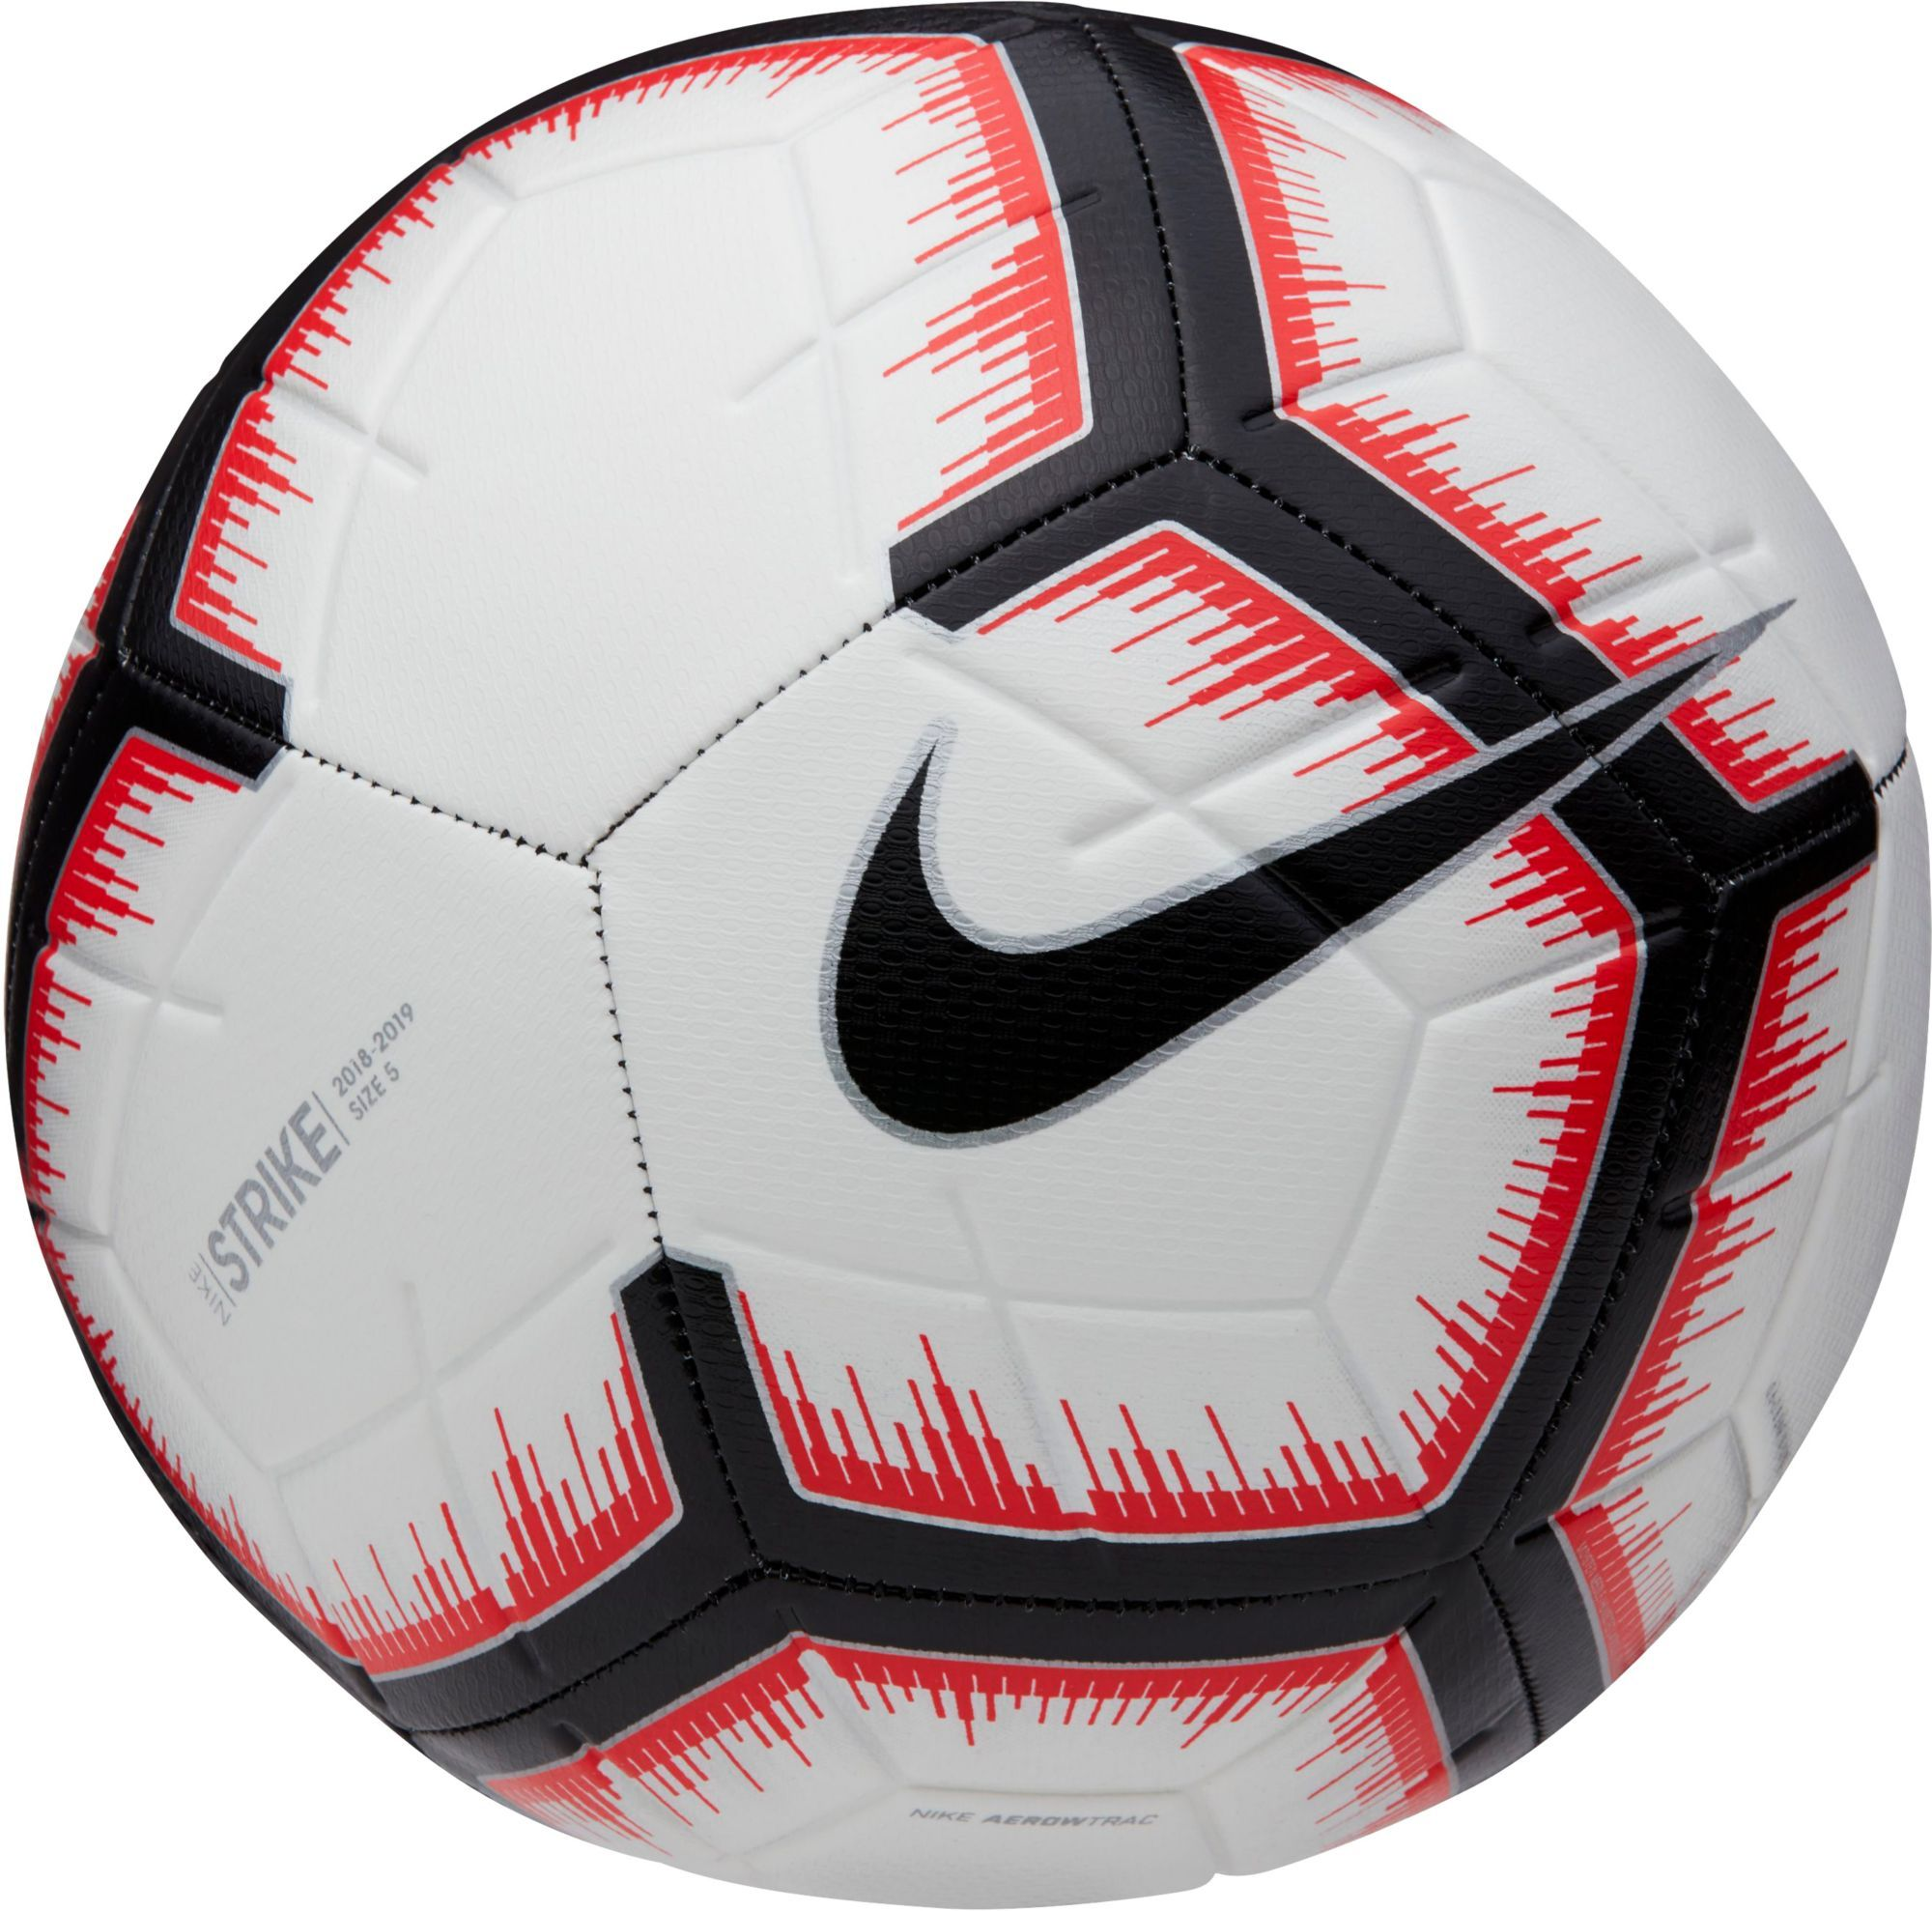 suffering beat mask  Nike Strike Soccer Ball, White in 2020 | Soccer ball, Soccer, Soccer balls